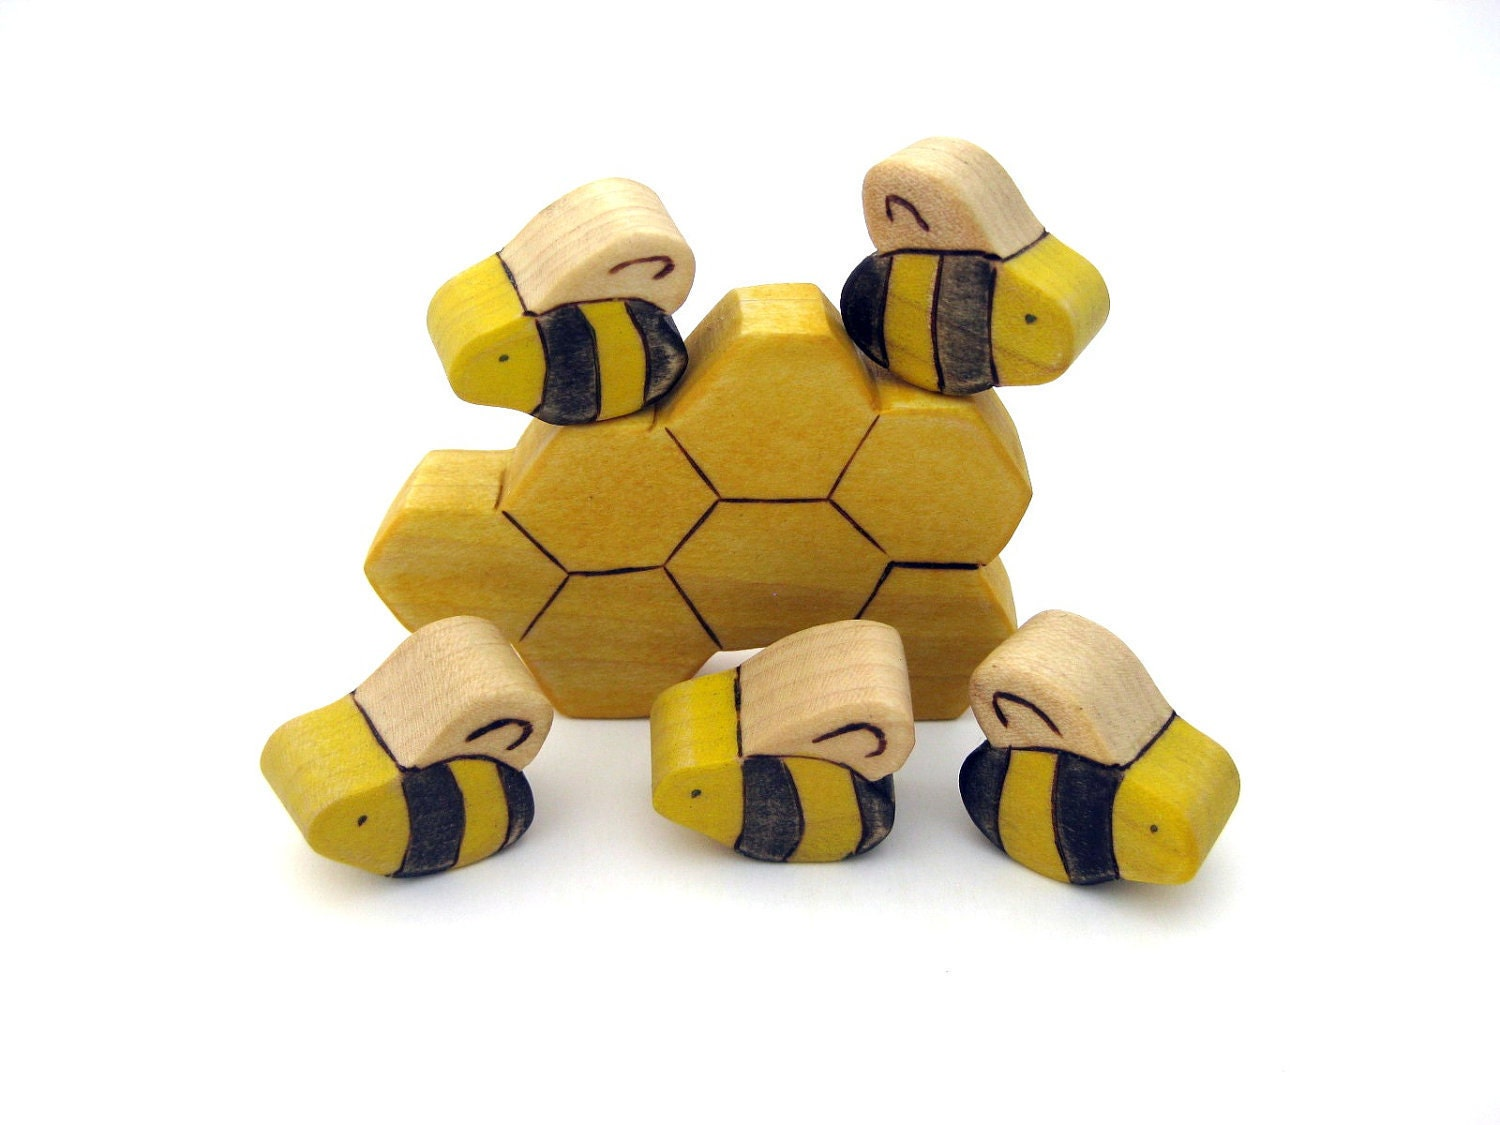 Honey Bees & Honeycomb Toy - Handmade Wooden Toy - ArmadilloDreams